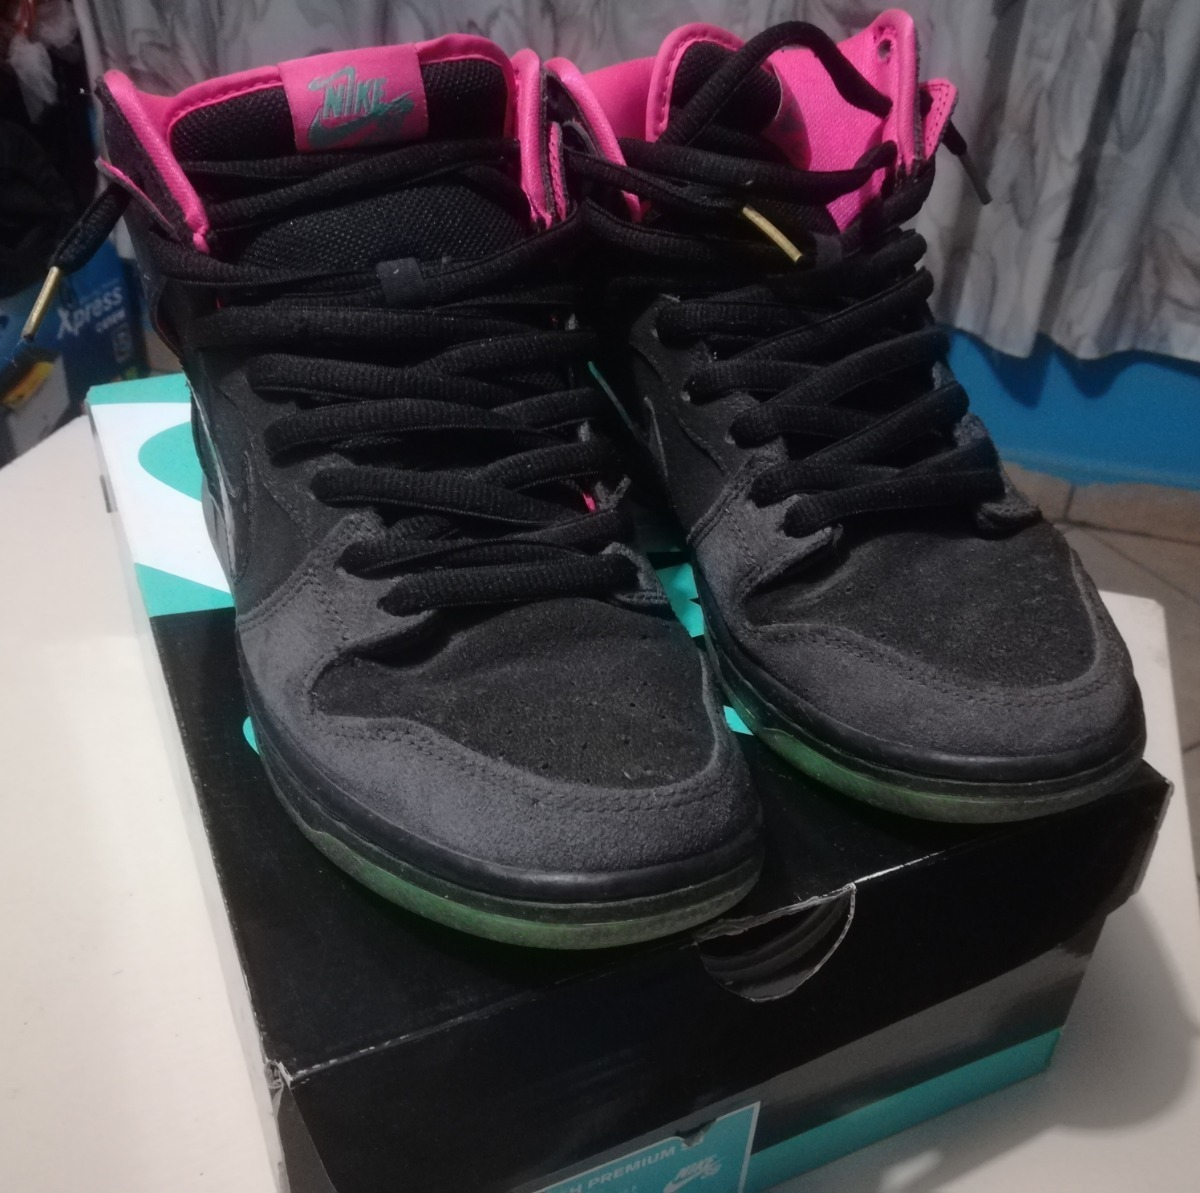 buy online c878a 7a6c8 Nike Sb Dunk High Premier Northern Lights (yeezy) - $ 3,200.00